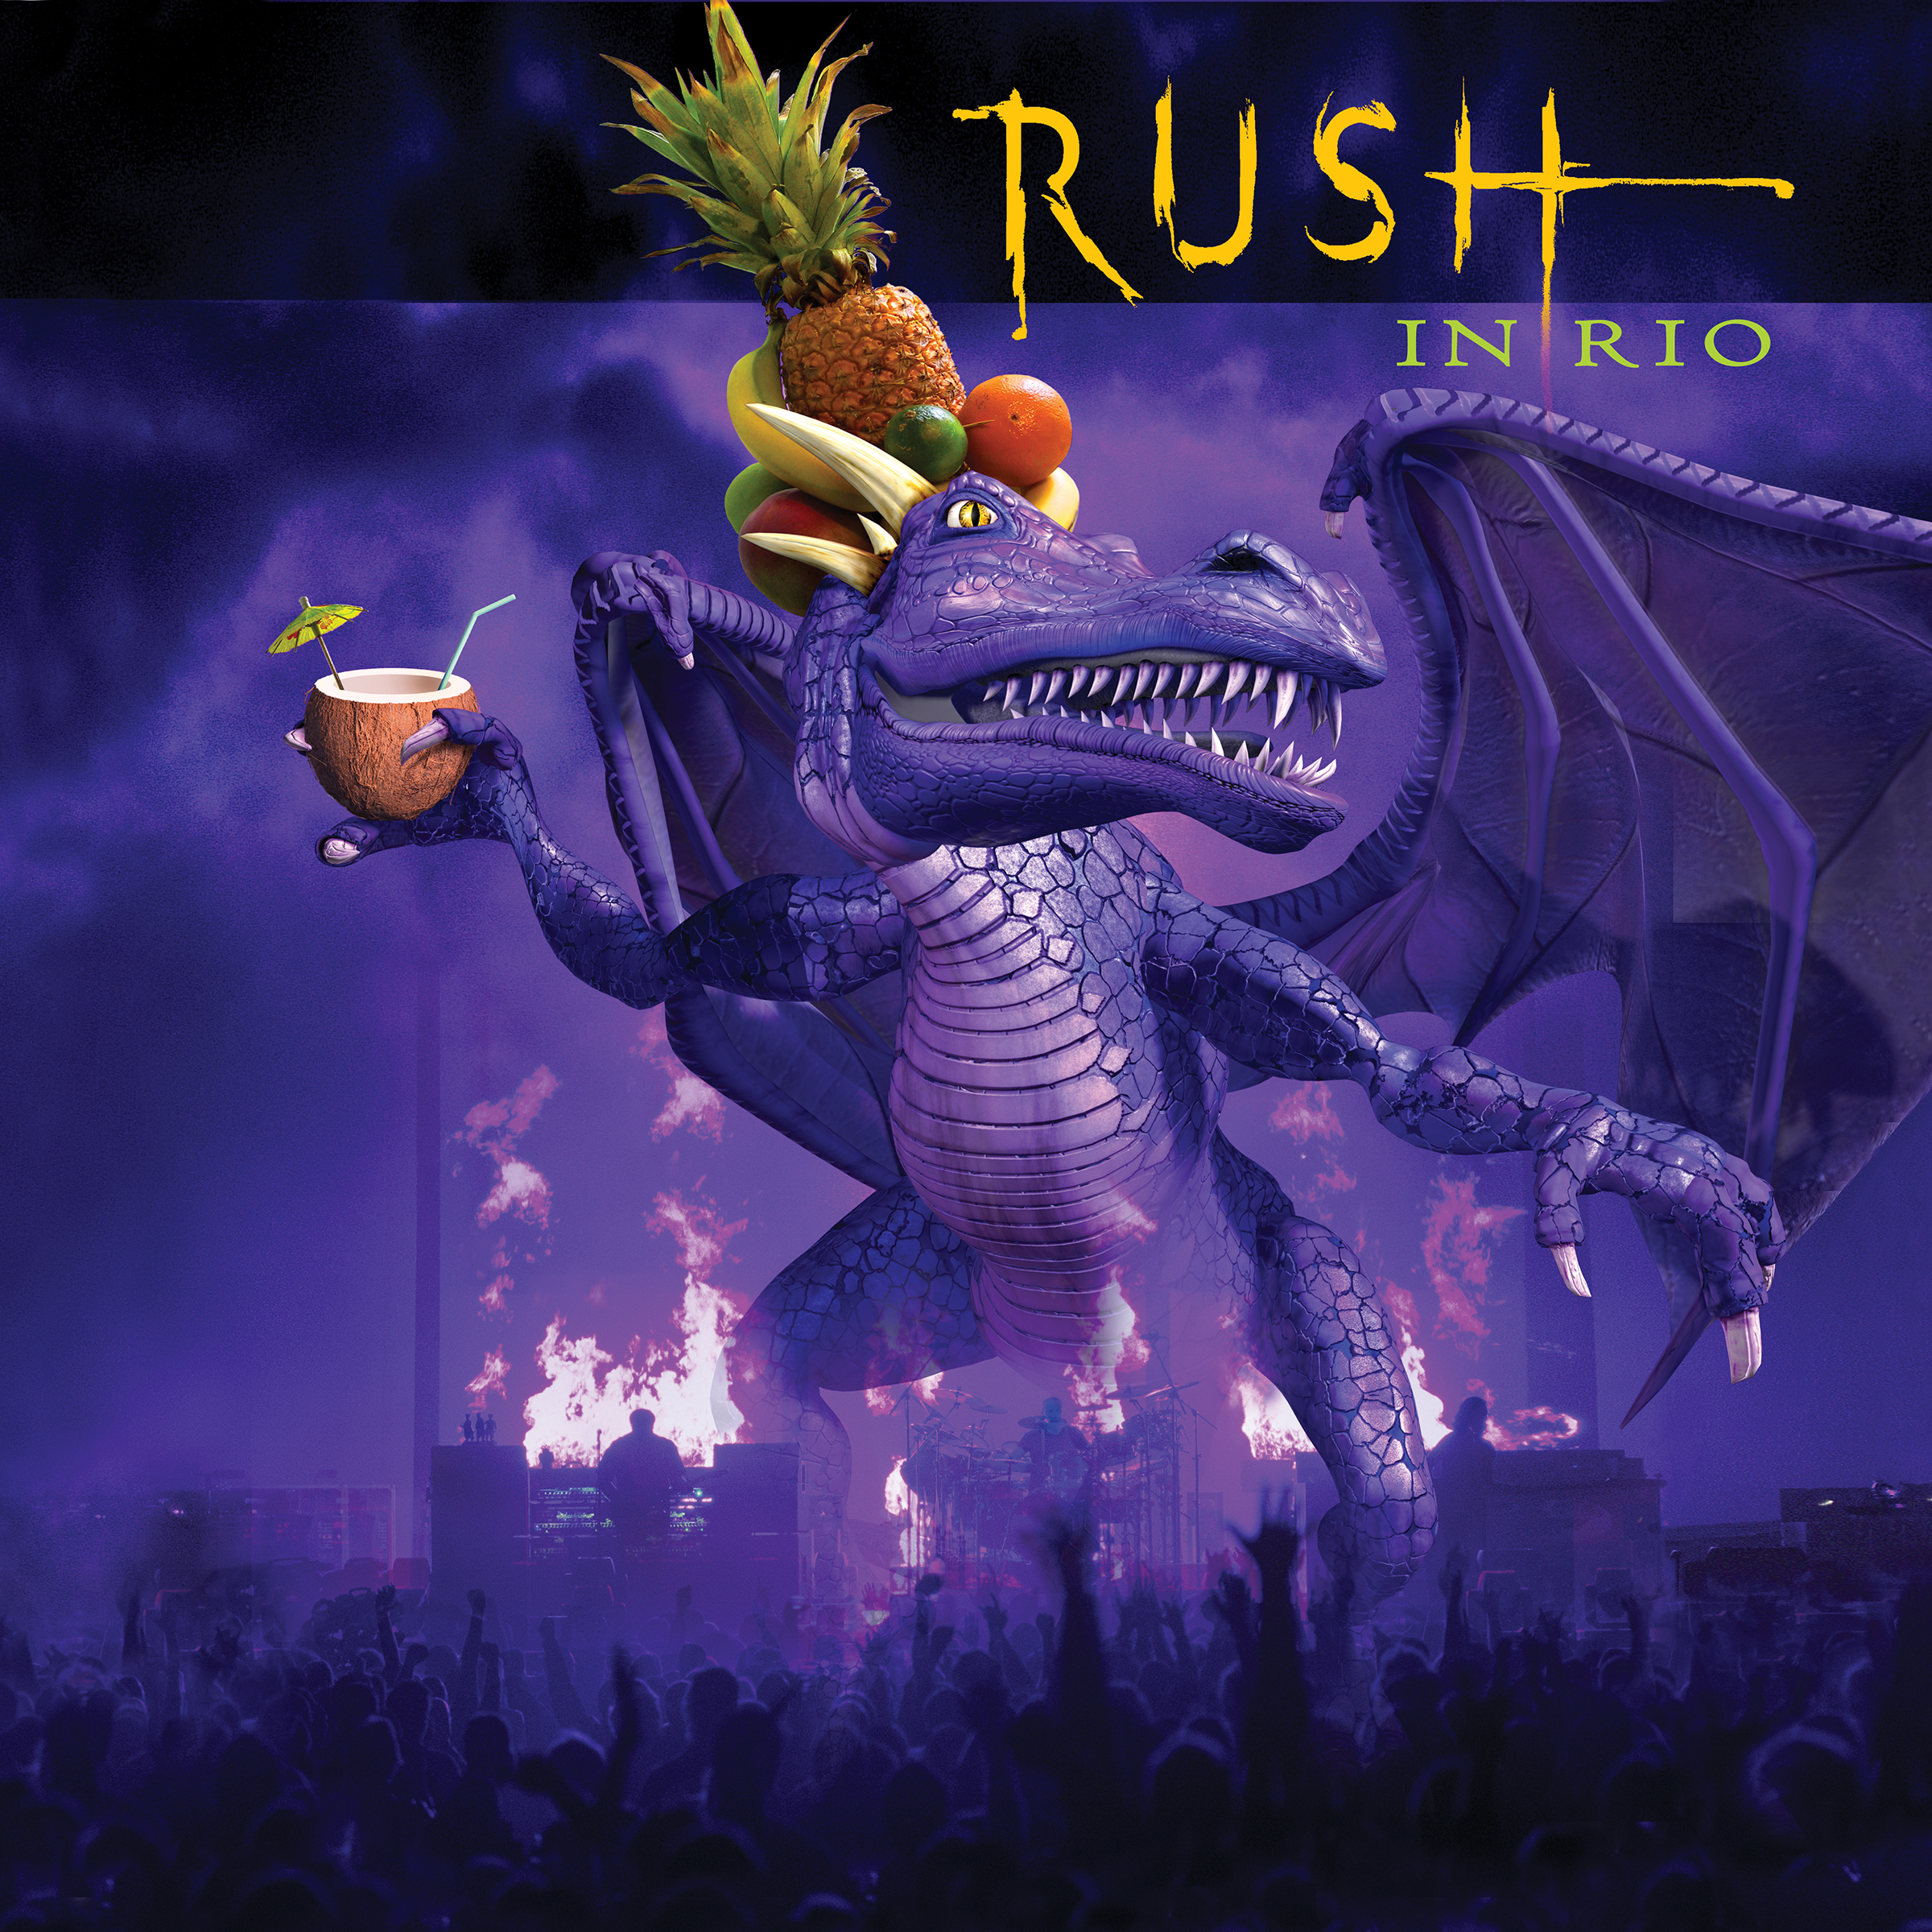 Rush in Rio 4 Vinyl Set